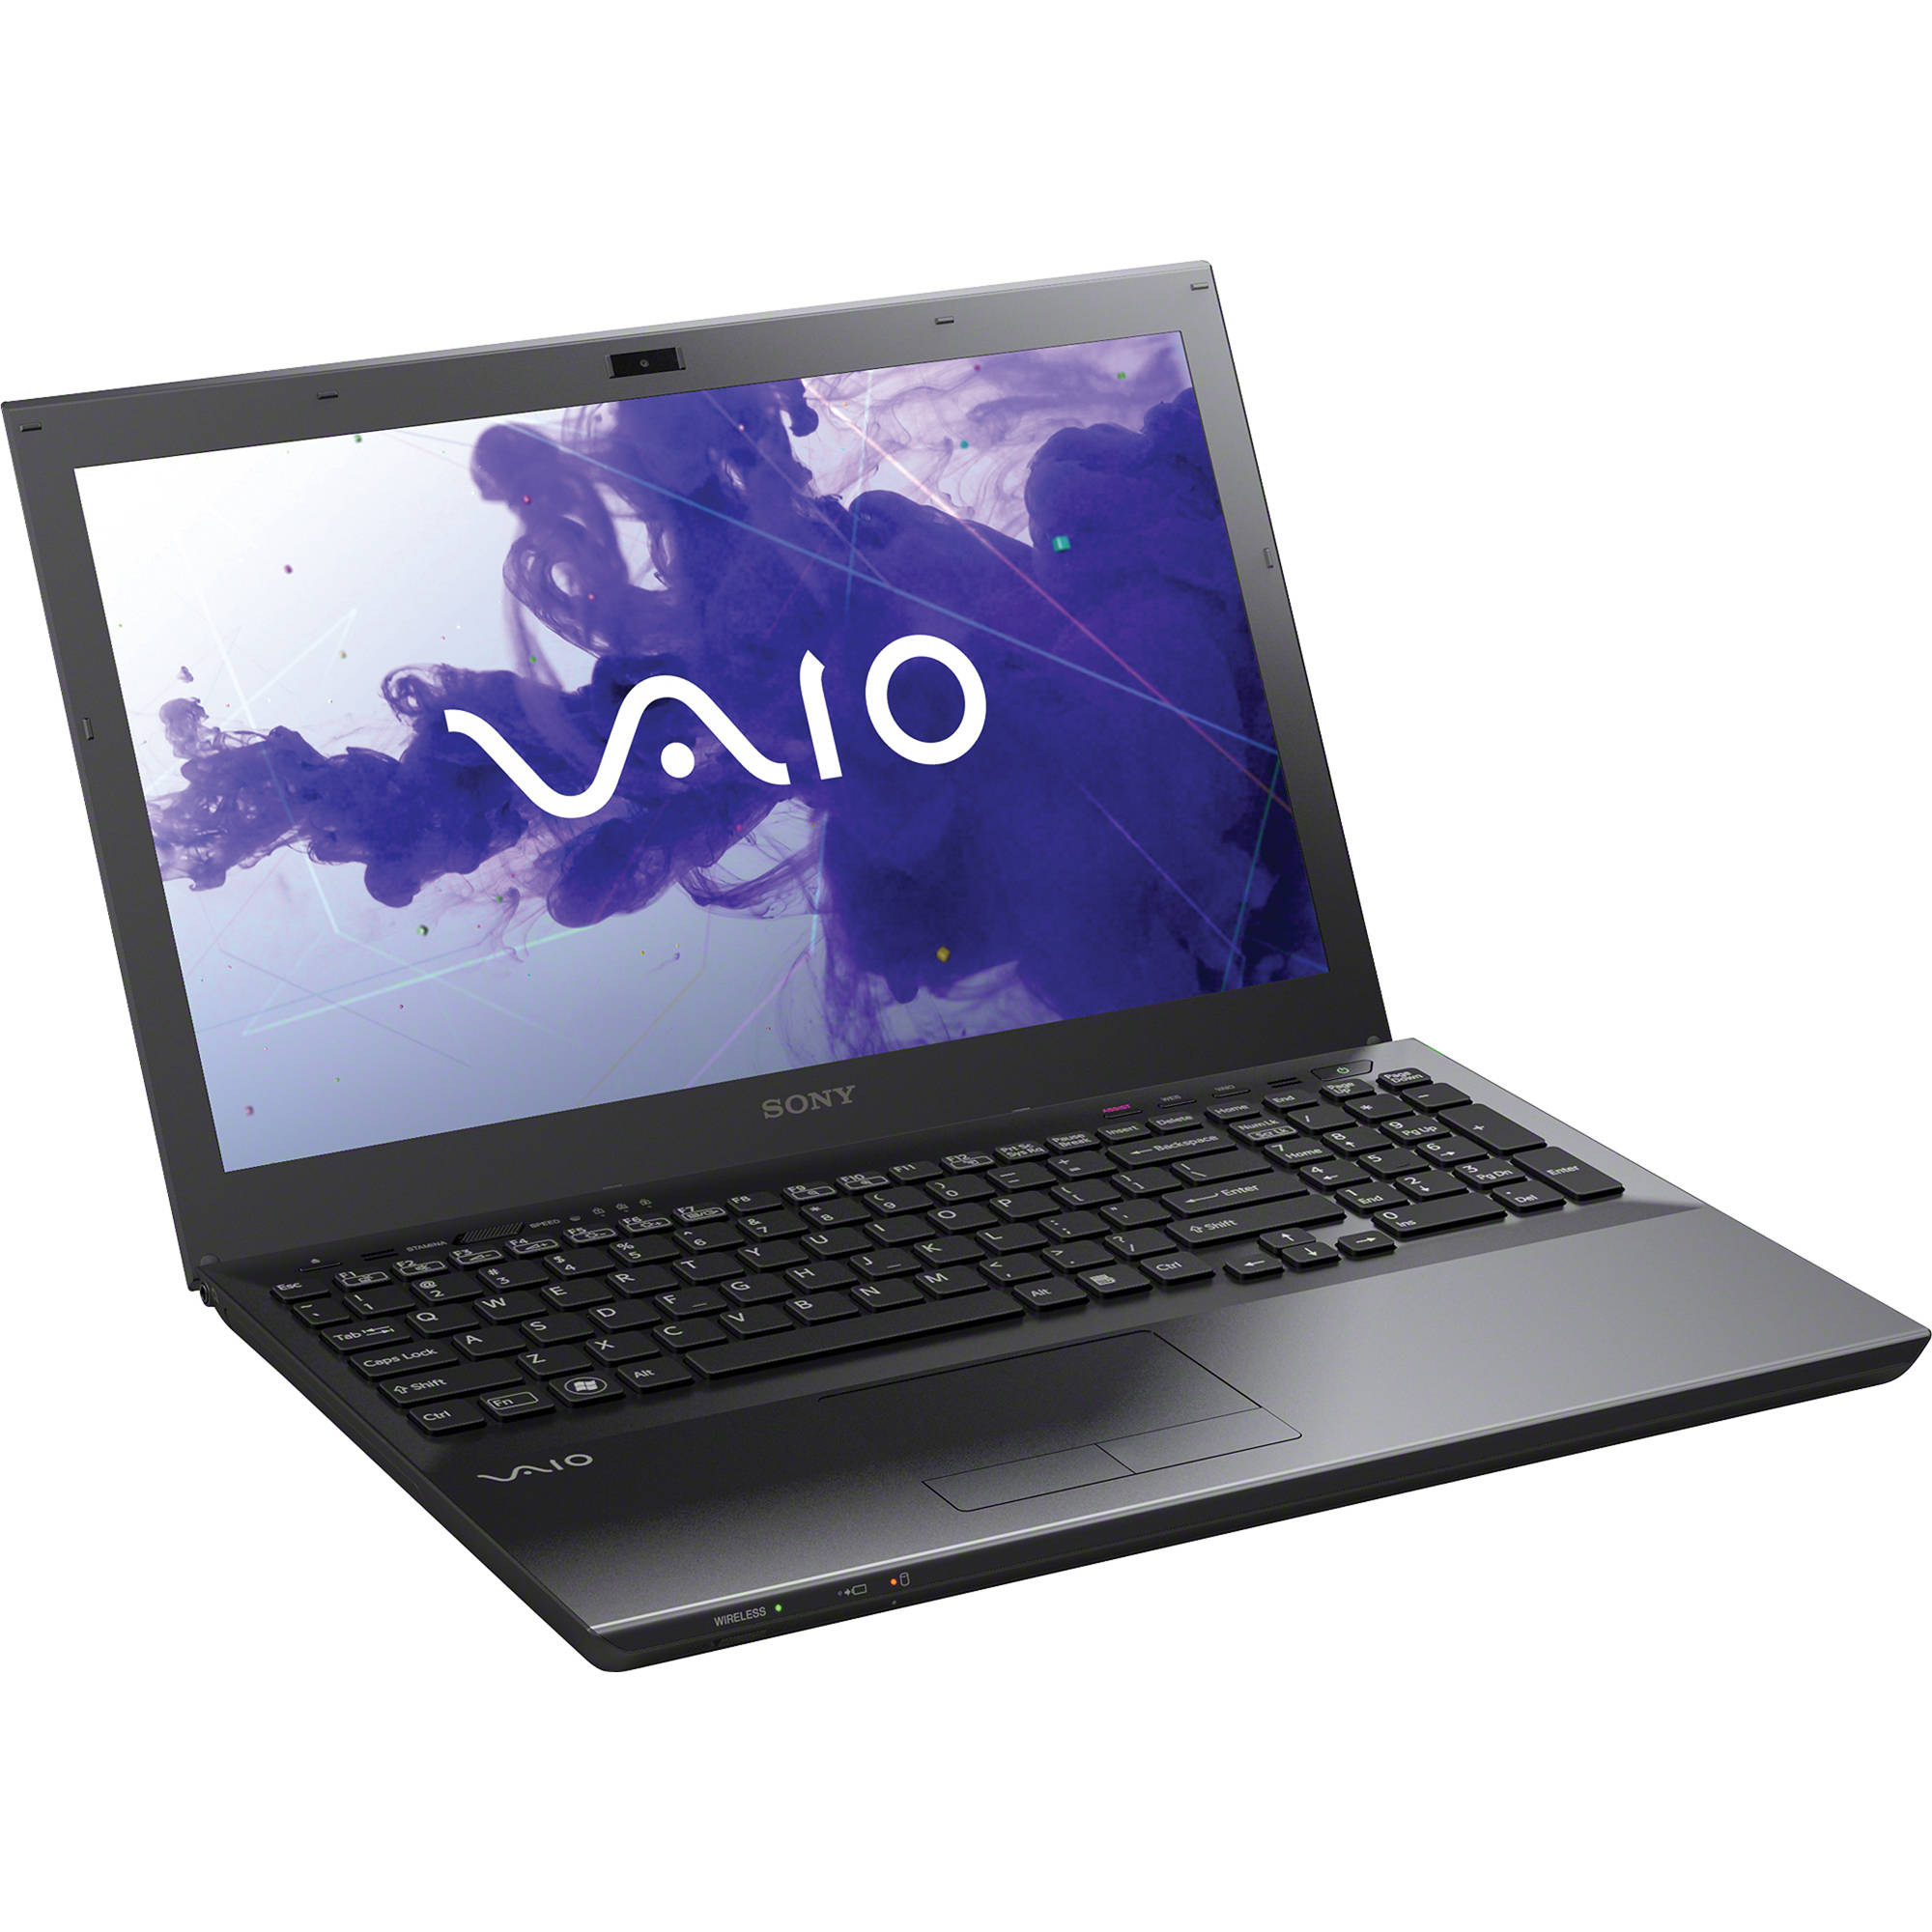 Sony Vaio VPCZ2390X/B Infineon Drivers for Mac